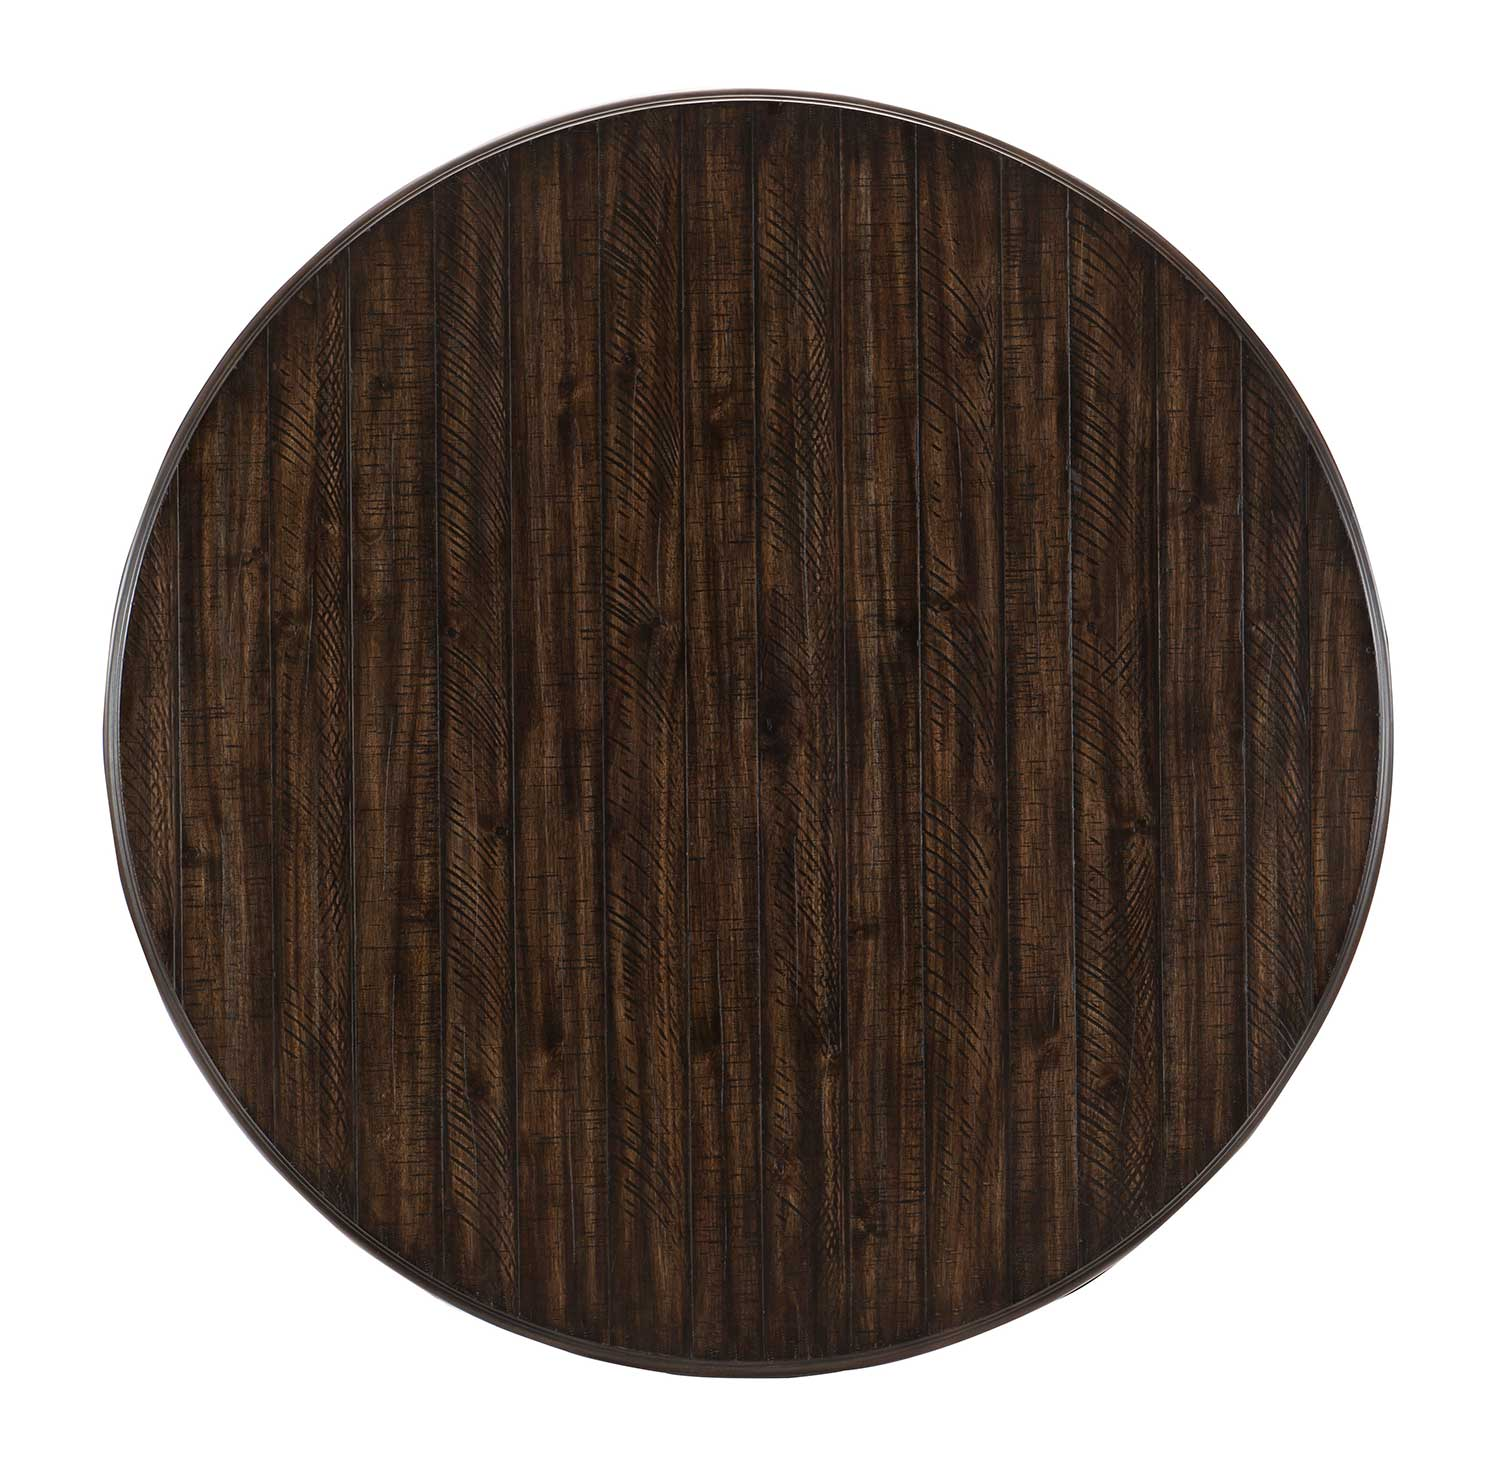 Homelegance Cardano Round Dining Table - Driftwood Charcoal